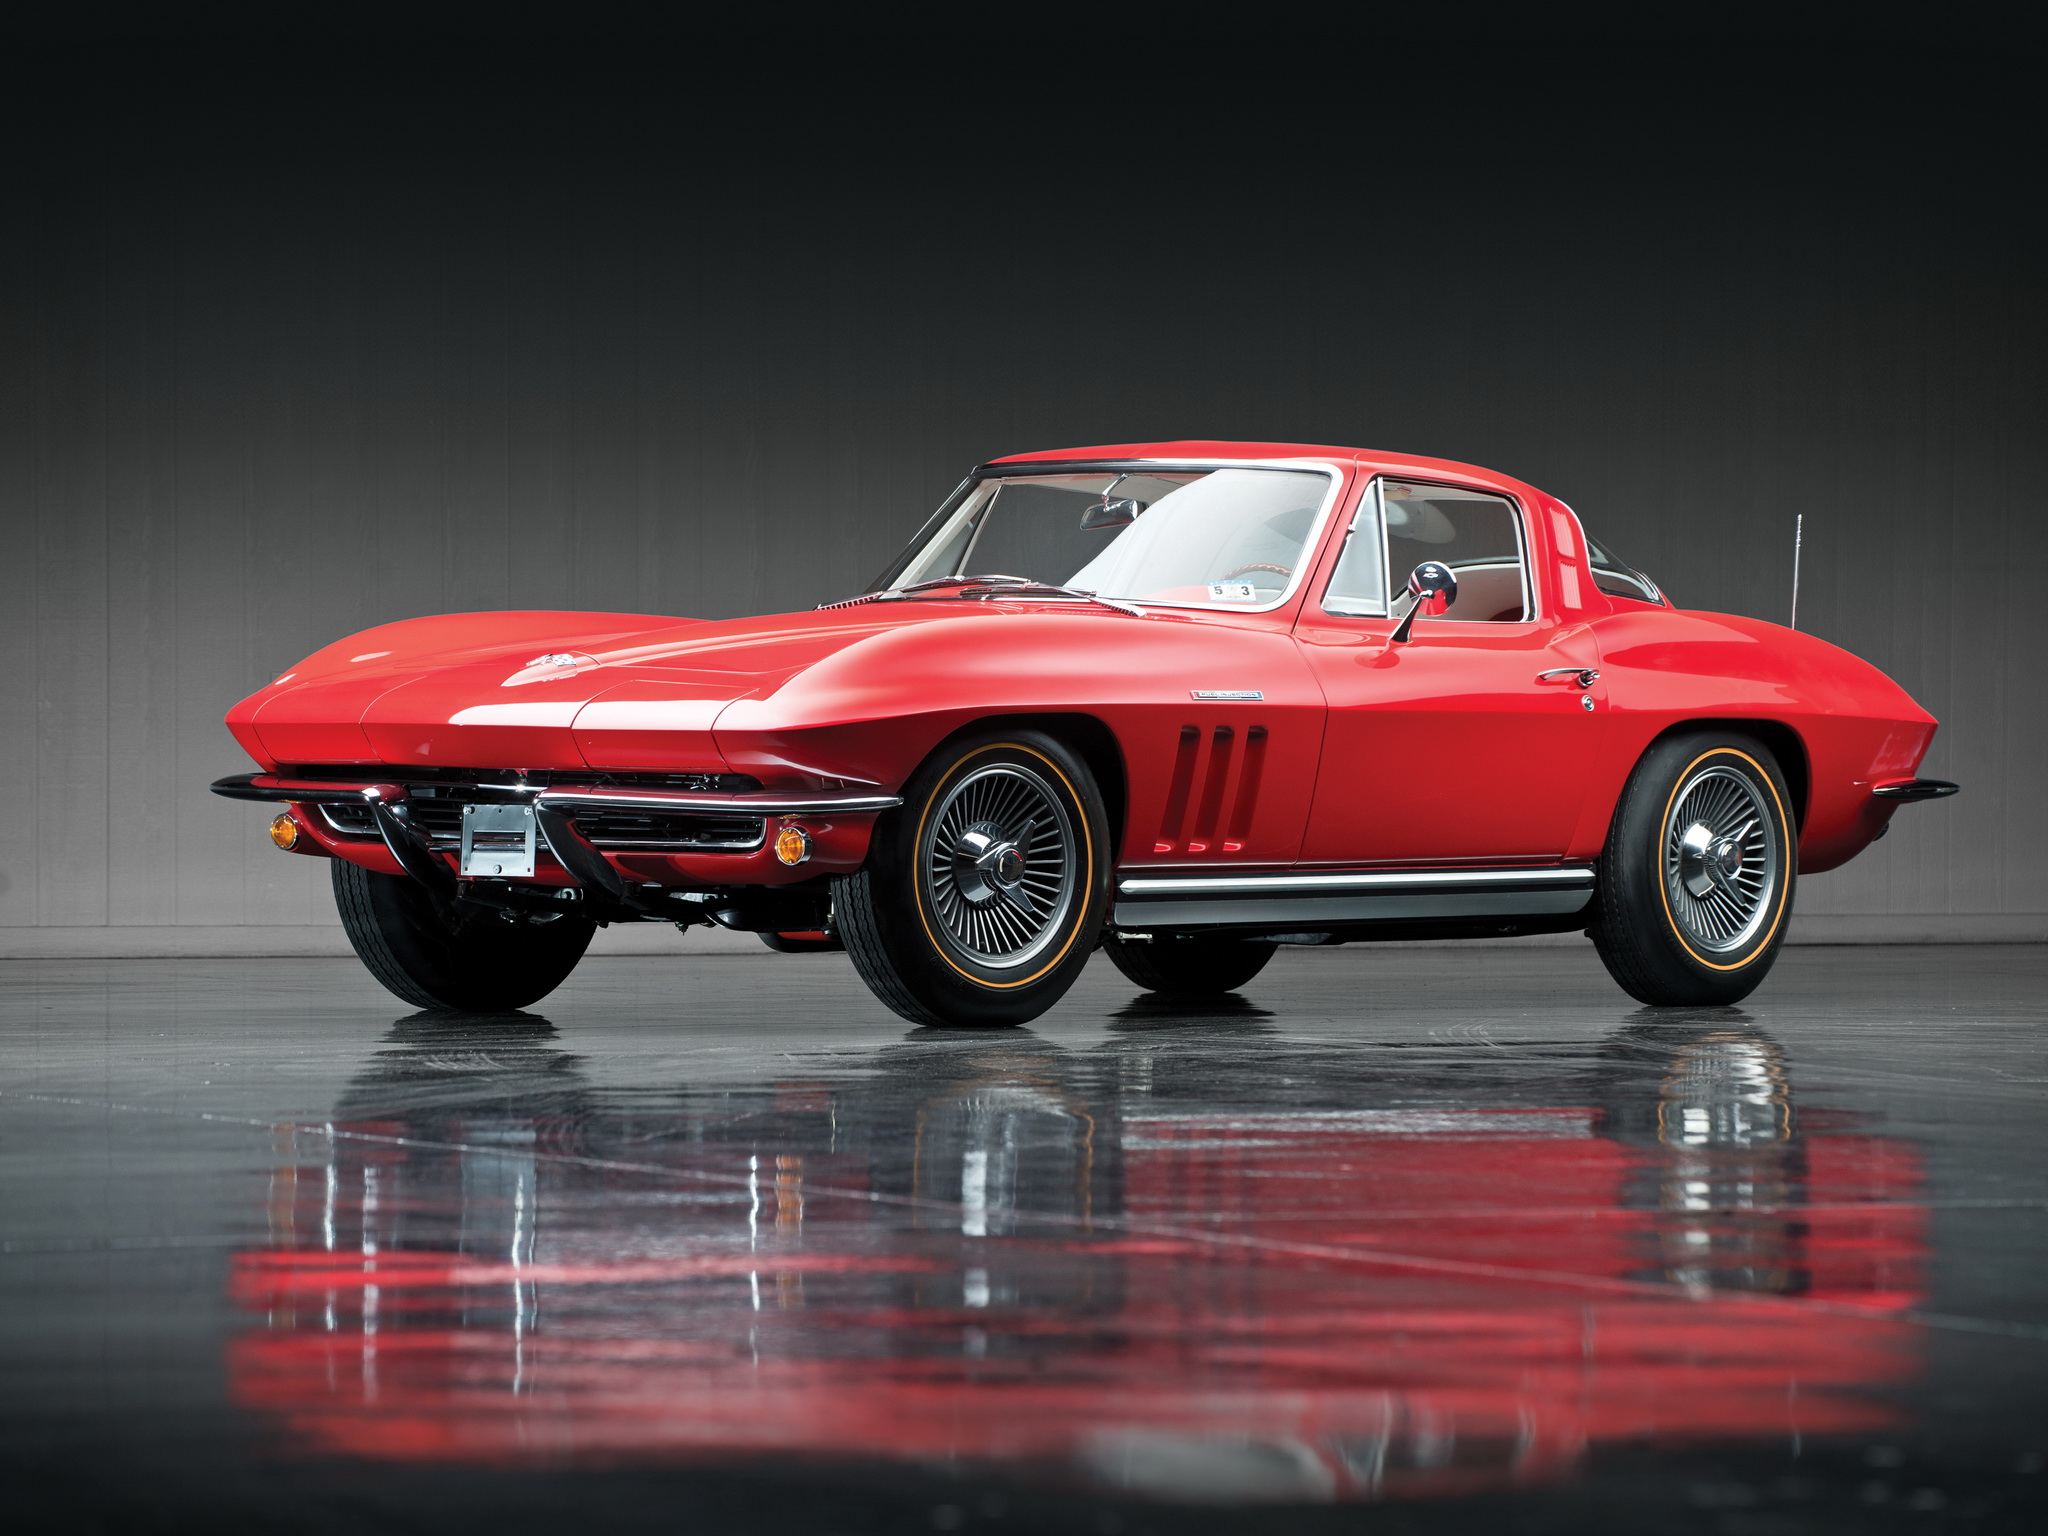 1965 Chevrolet Corvette Sting Ray L84 327 Fuel Injection C 2 Supercar Muscle Classic Hw Wallpaper